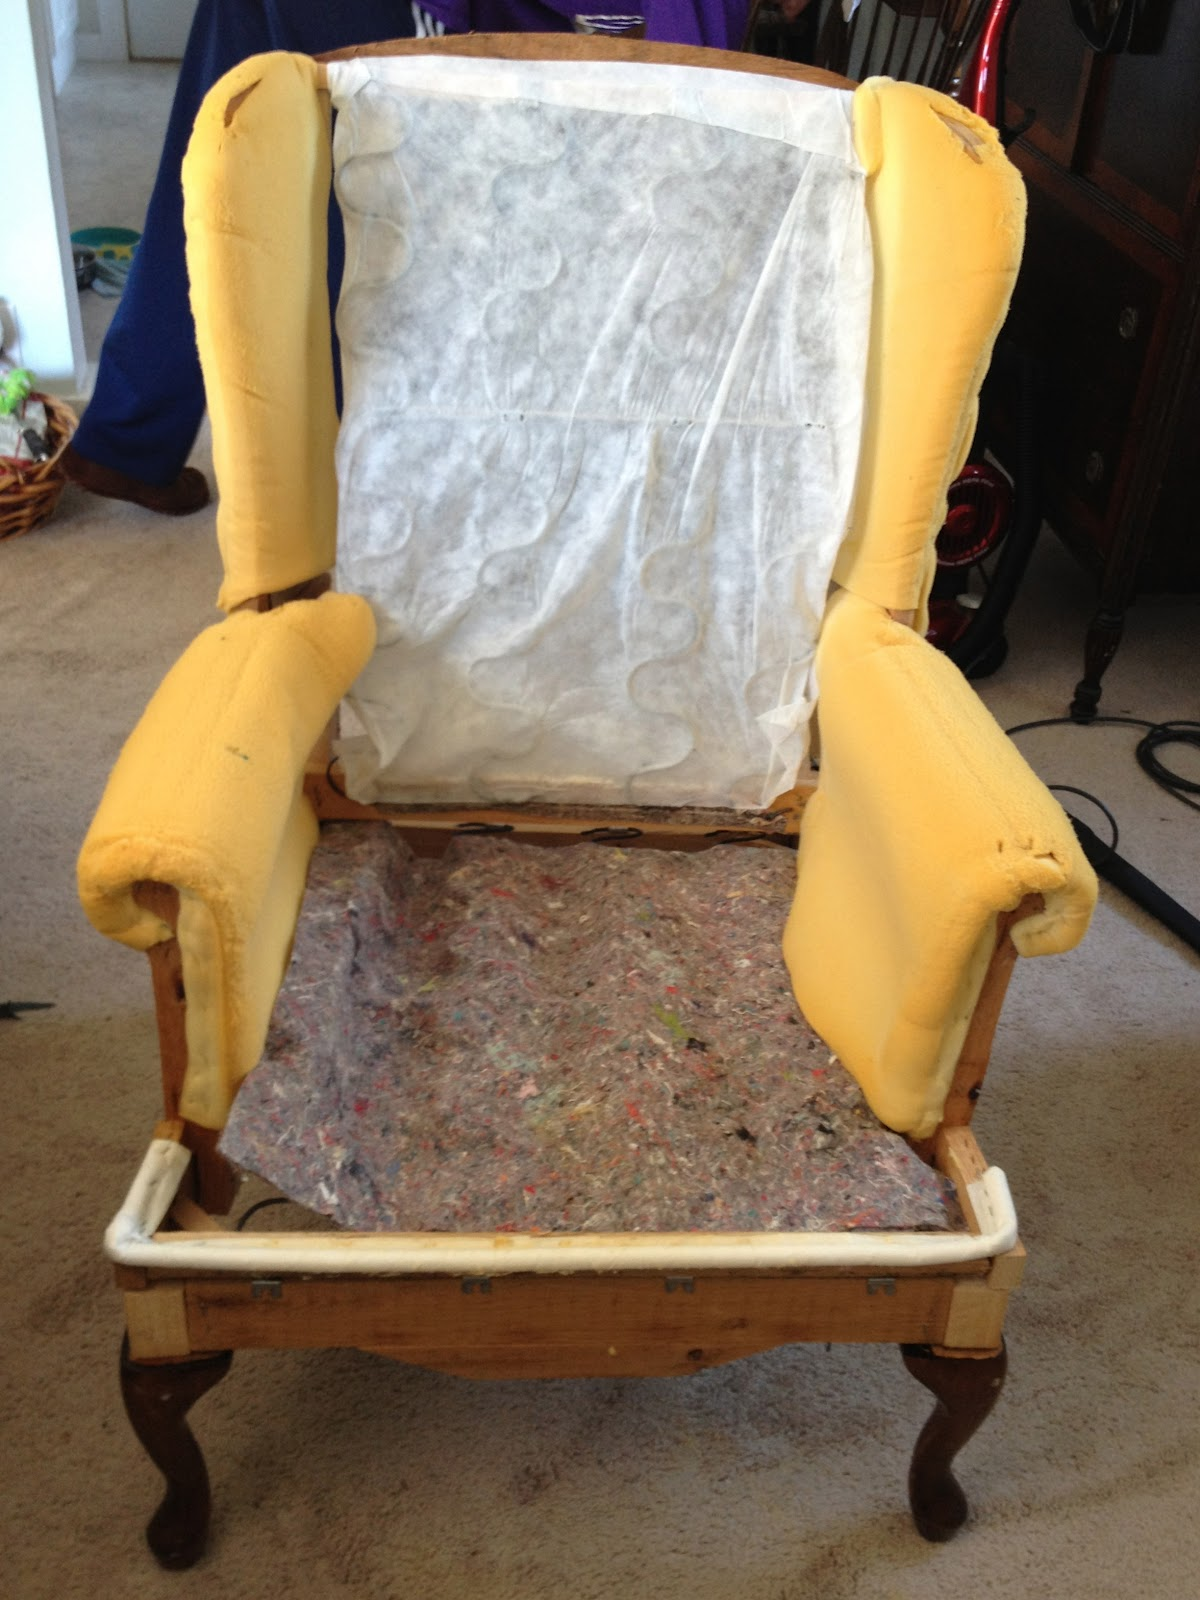 how to reupholster a chair cushion corner leap v2 vs v1 make bake and love re upholstering wing back